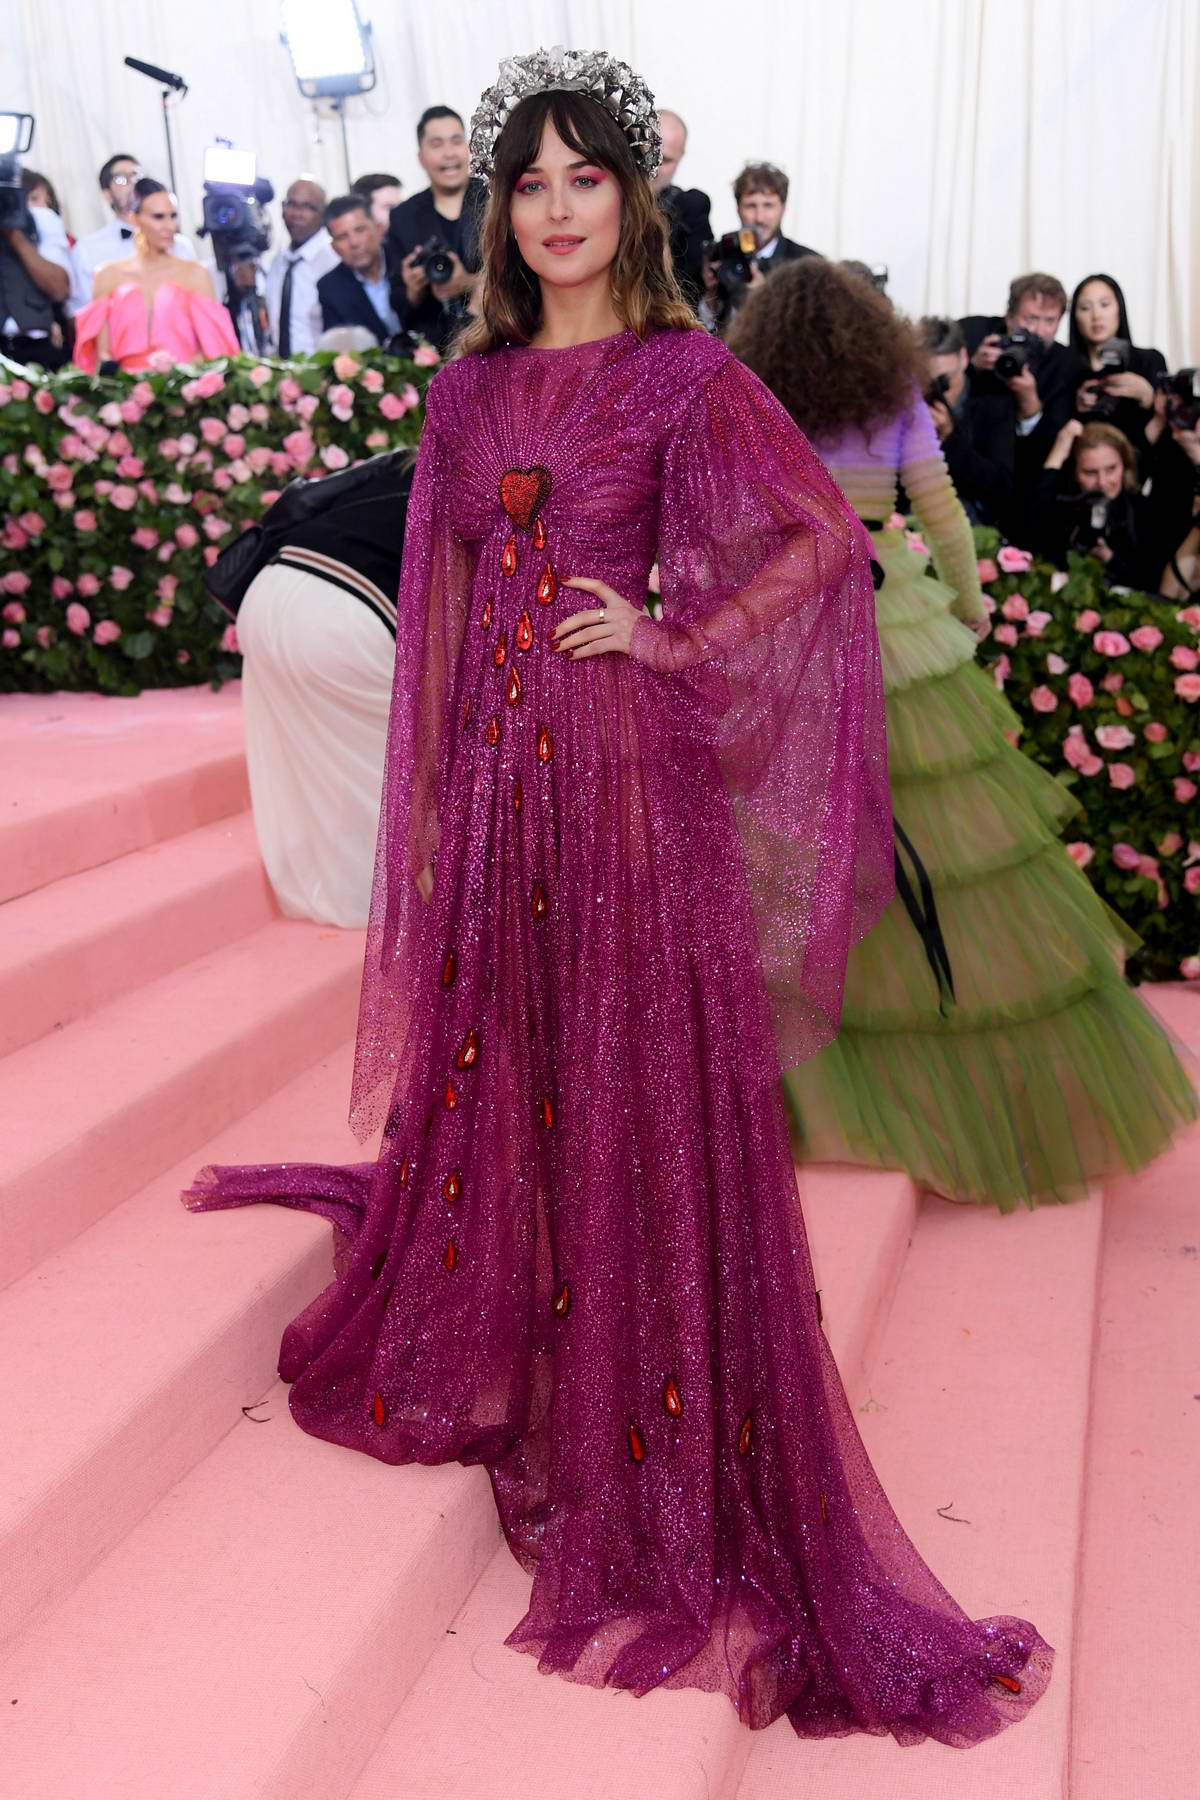 Dakota Johnson attends The 2019 Met Gala Celebrating Camp: Notes on Fashion in New York City